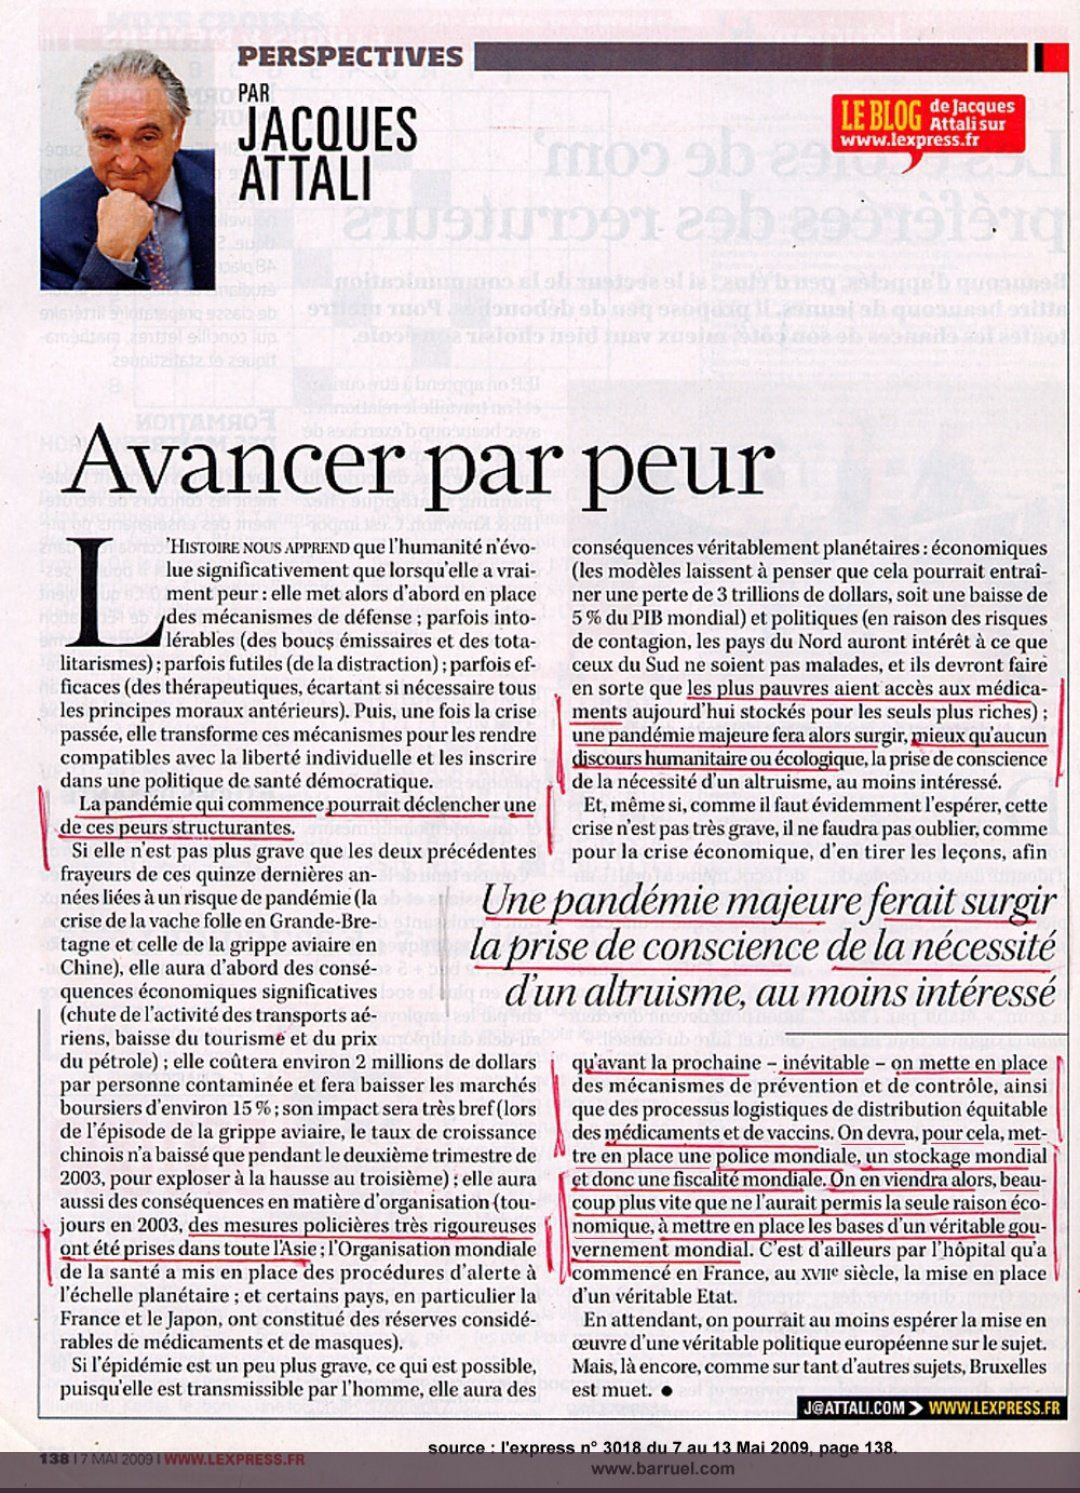 Jacques Attali : Avancer par peur - Journal l'Express